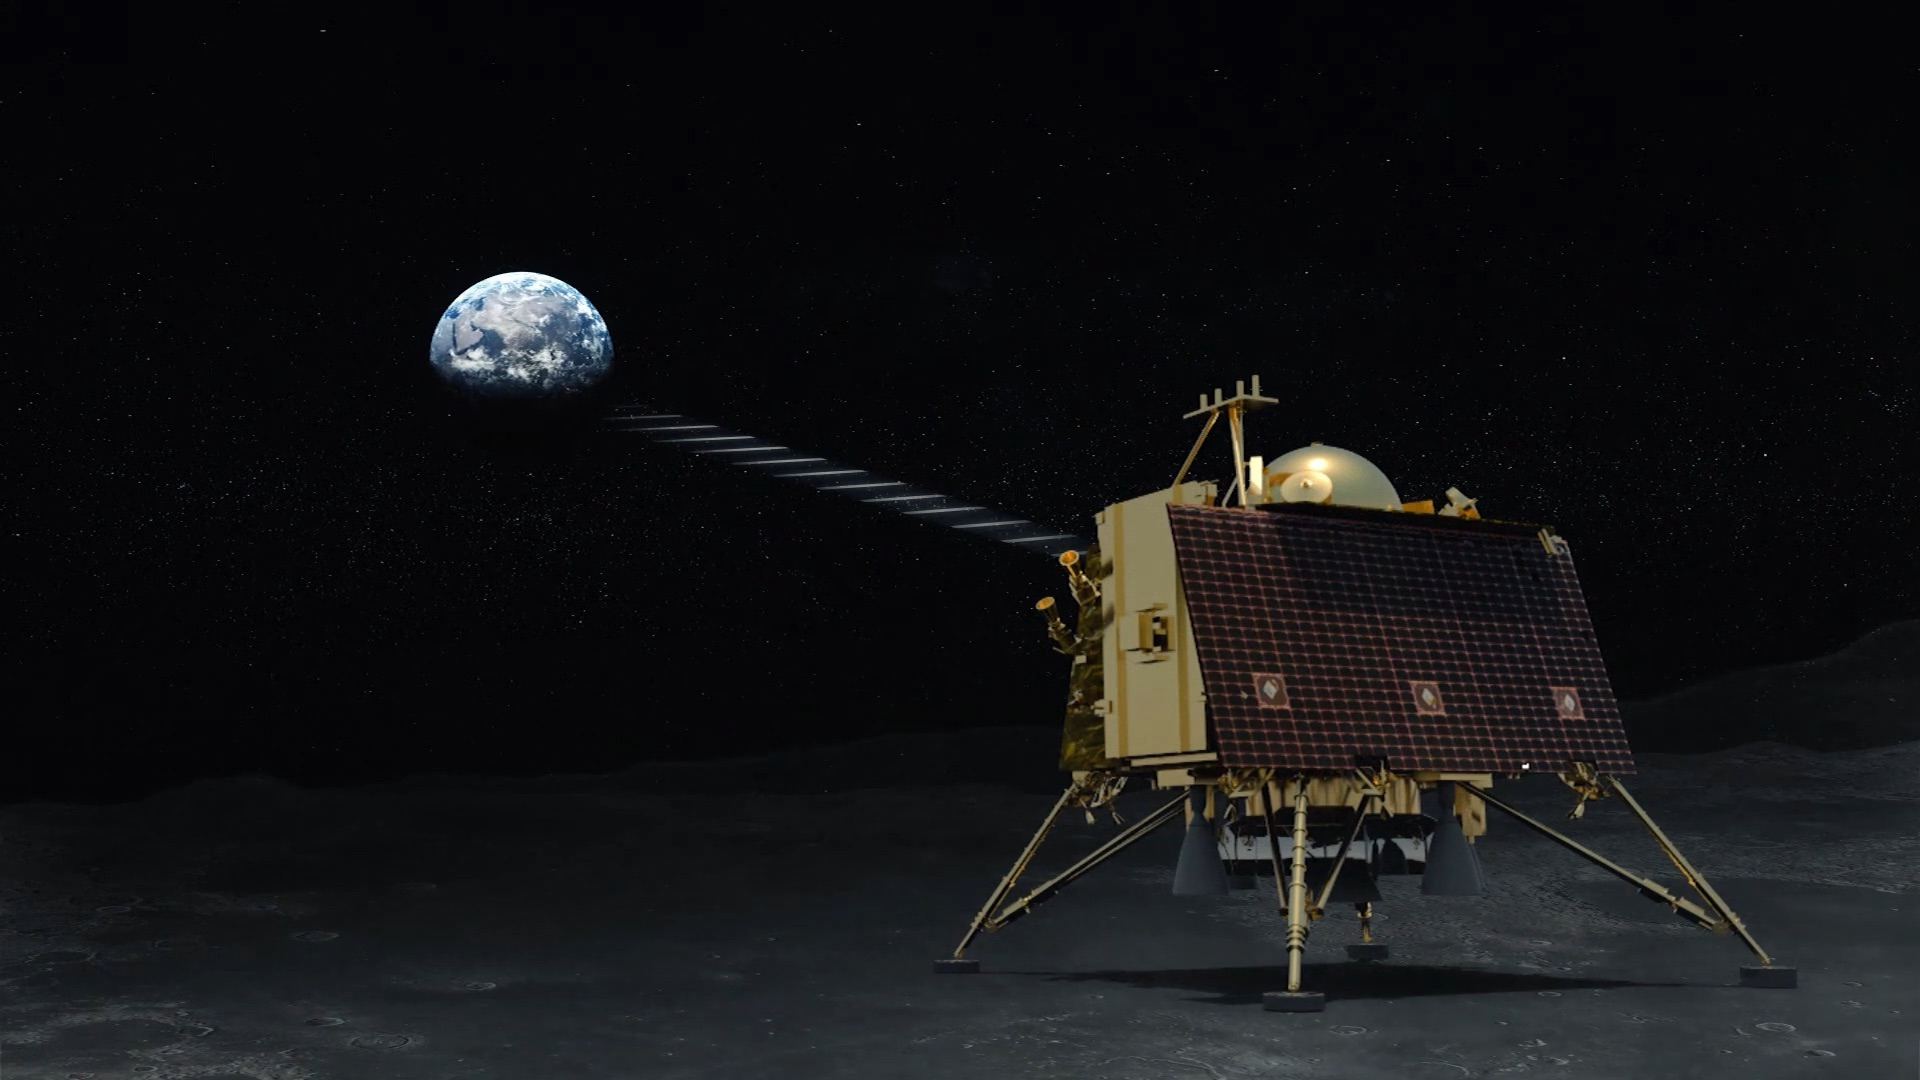 India's Moon mission signals country's growing space ambitions